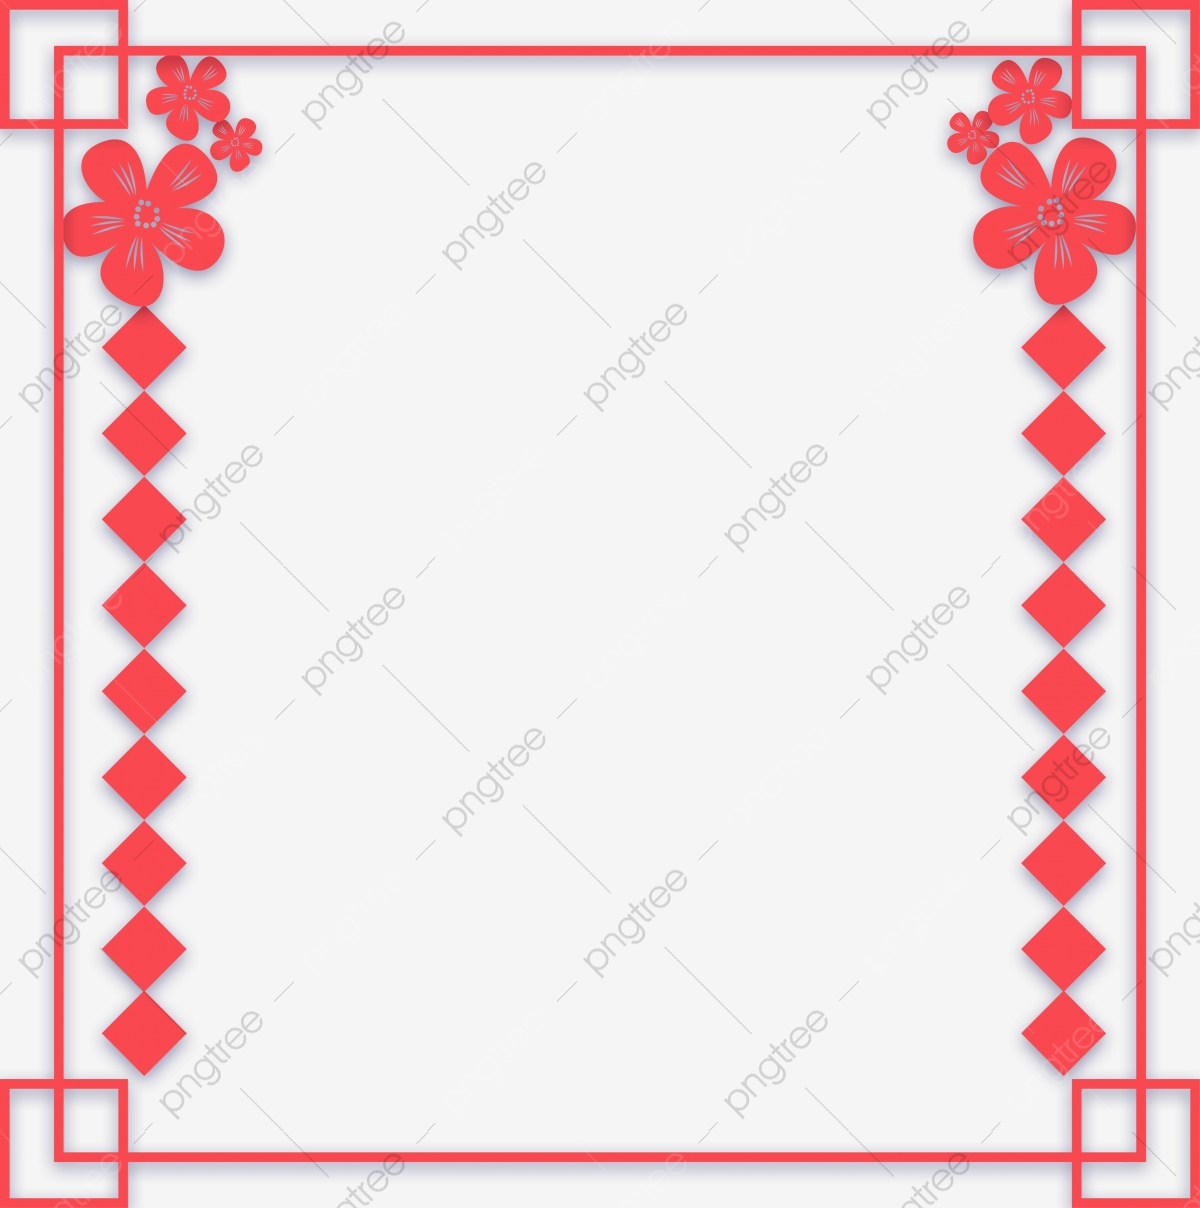 Square clipart beautiful border. Red flowers cartoon hand